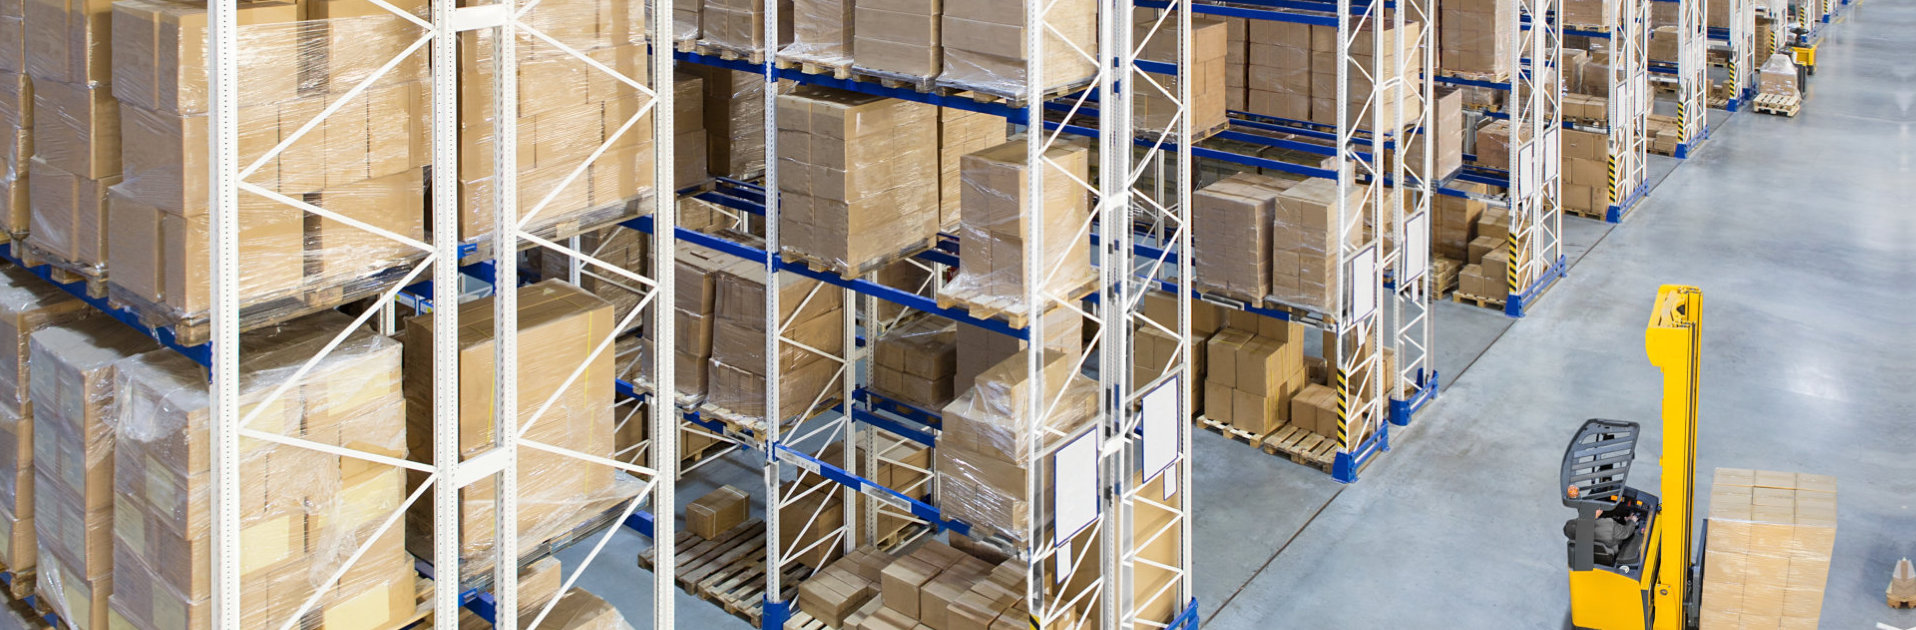 packages inisde warehouse